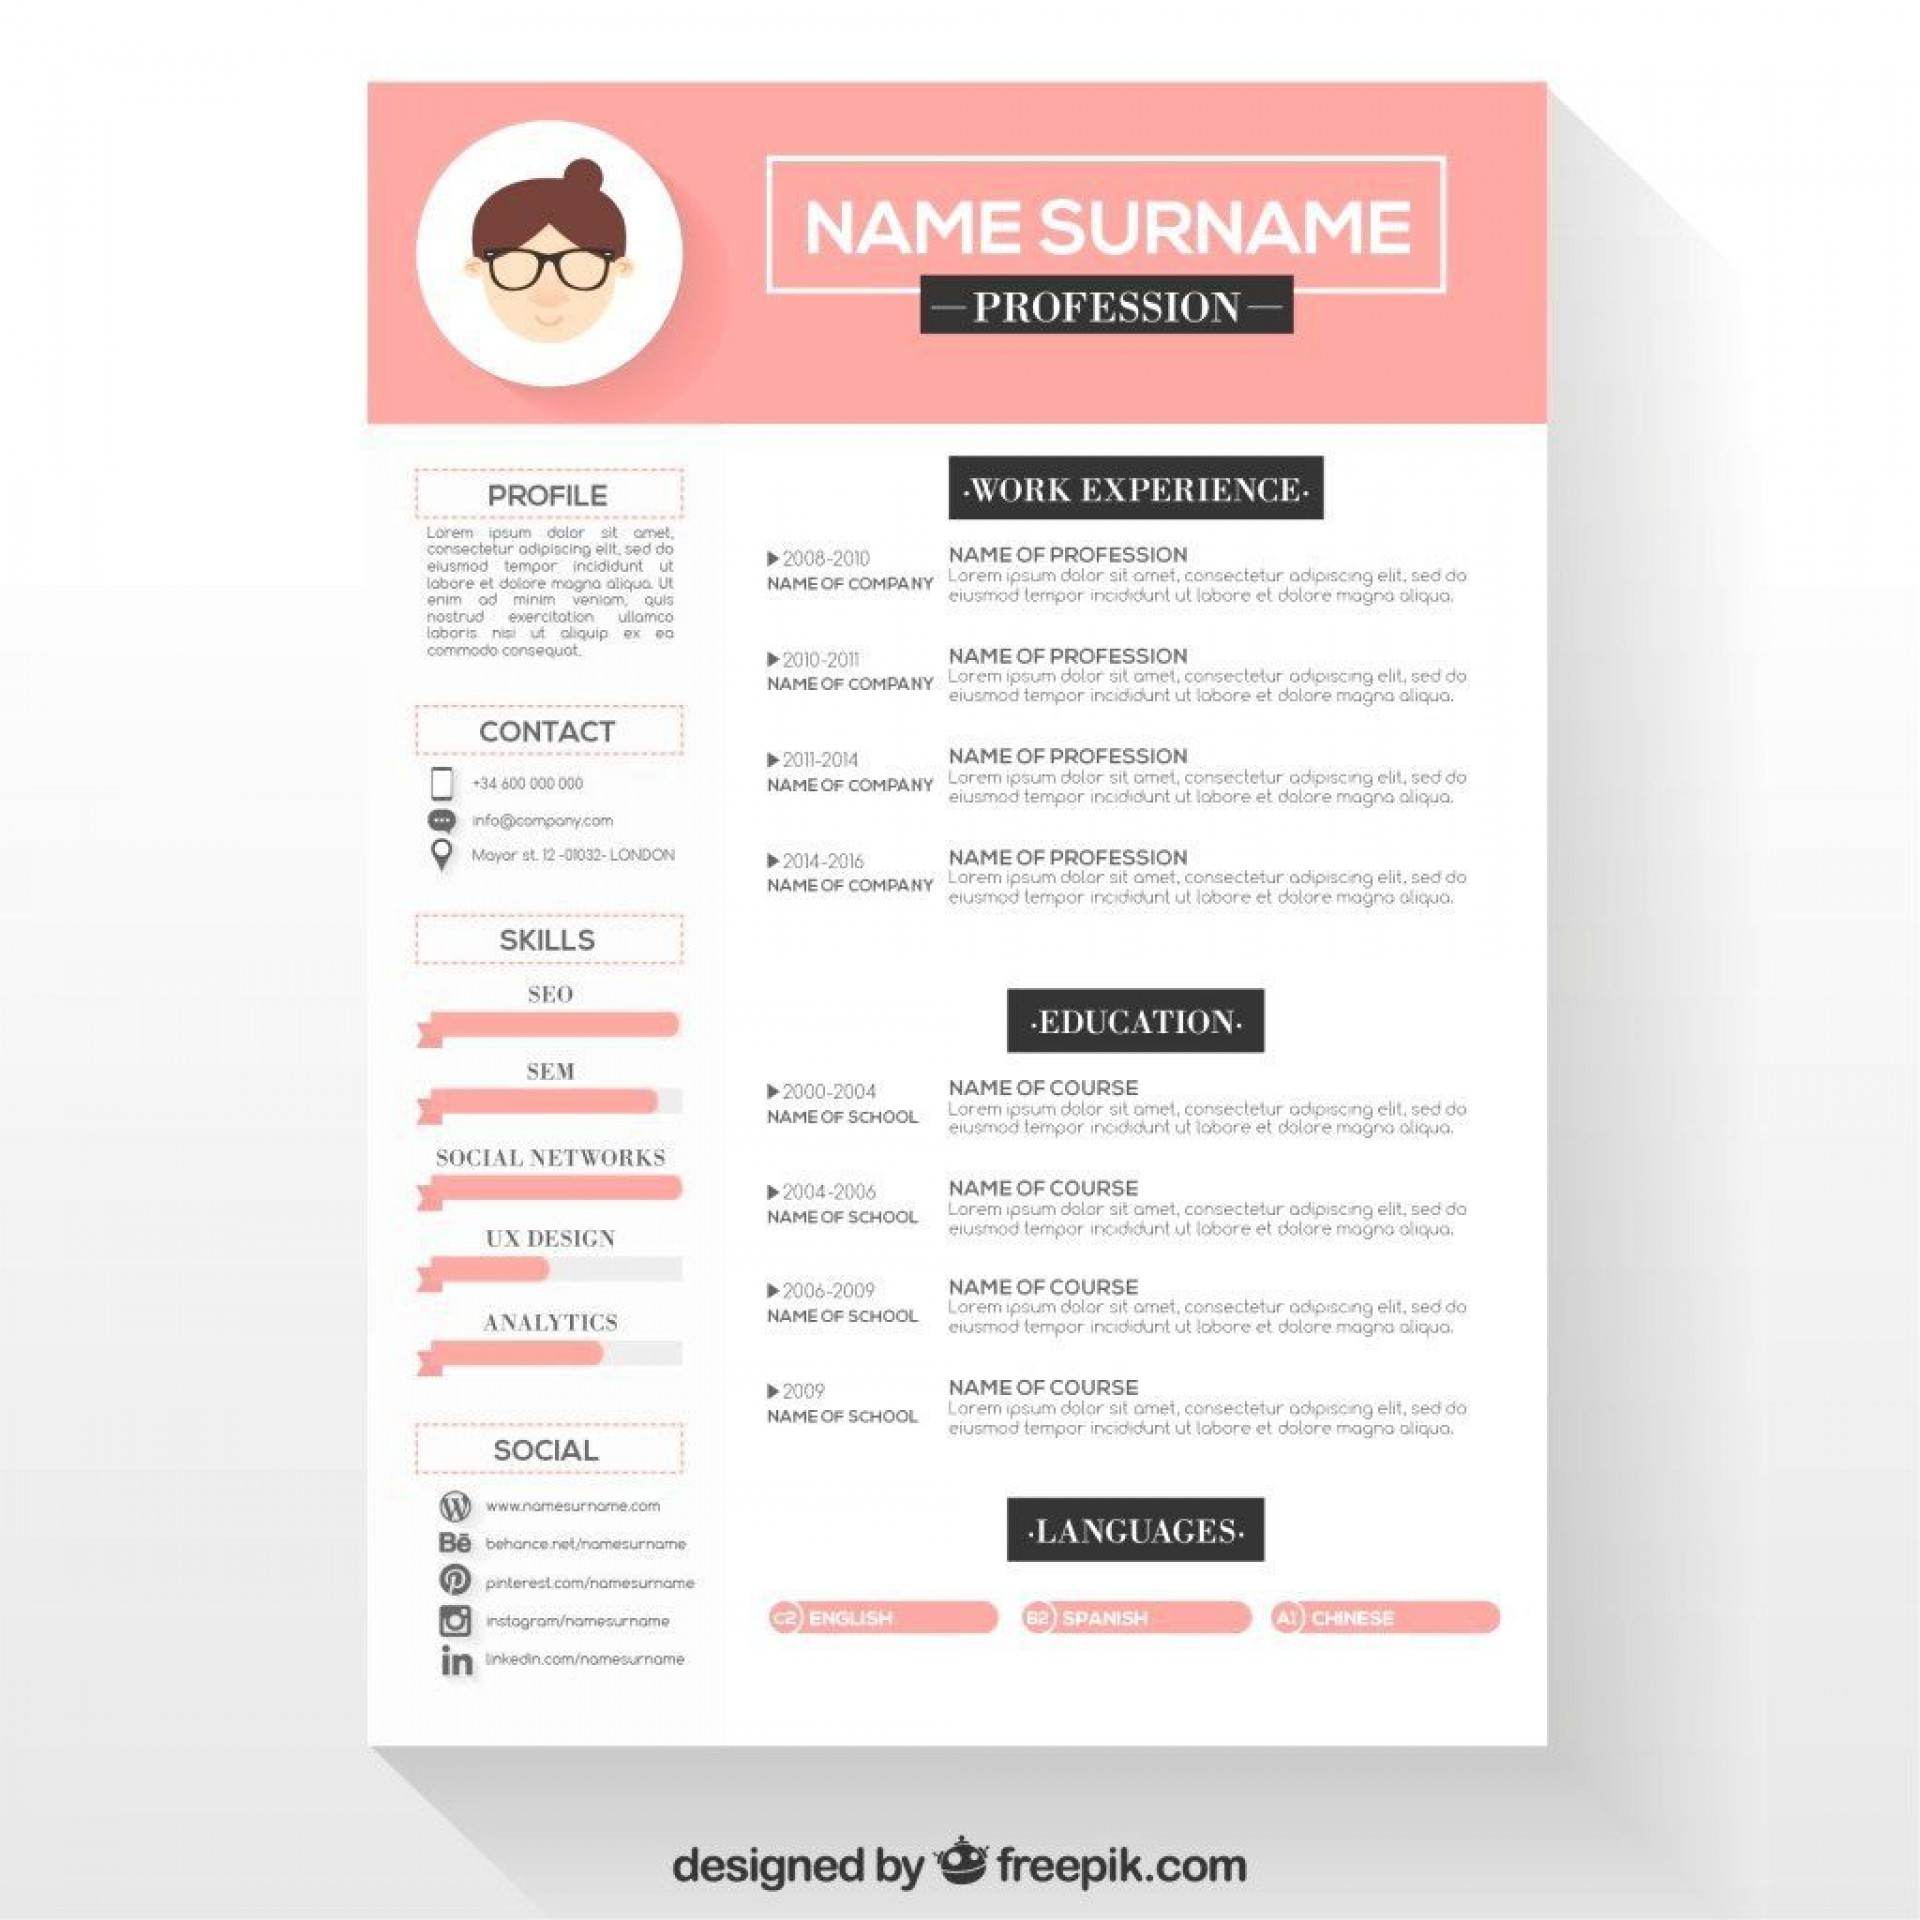 001 Simple Resume Template Download Word Picture  Cv Free 2018 2007 Document For Fresher1920